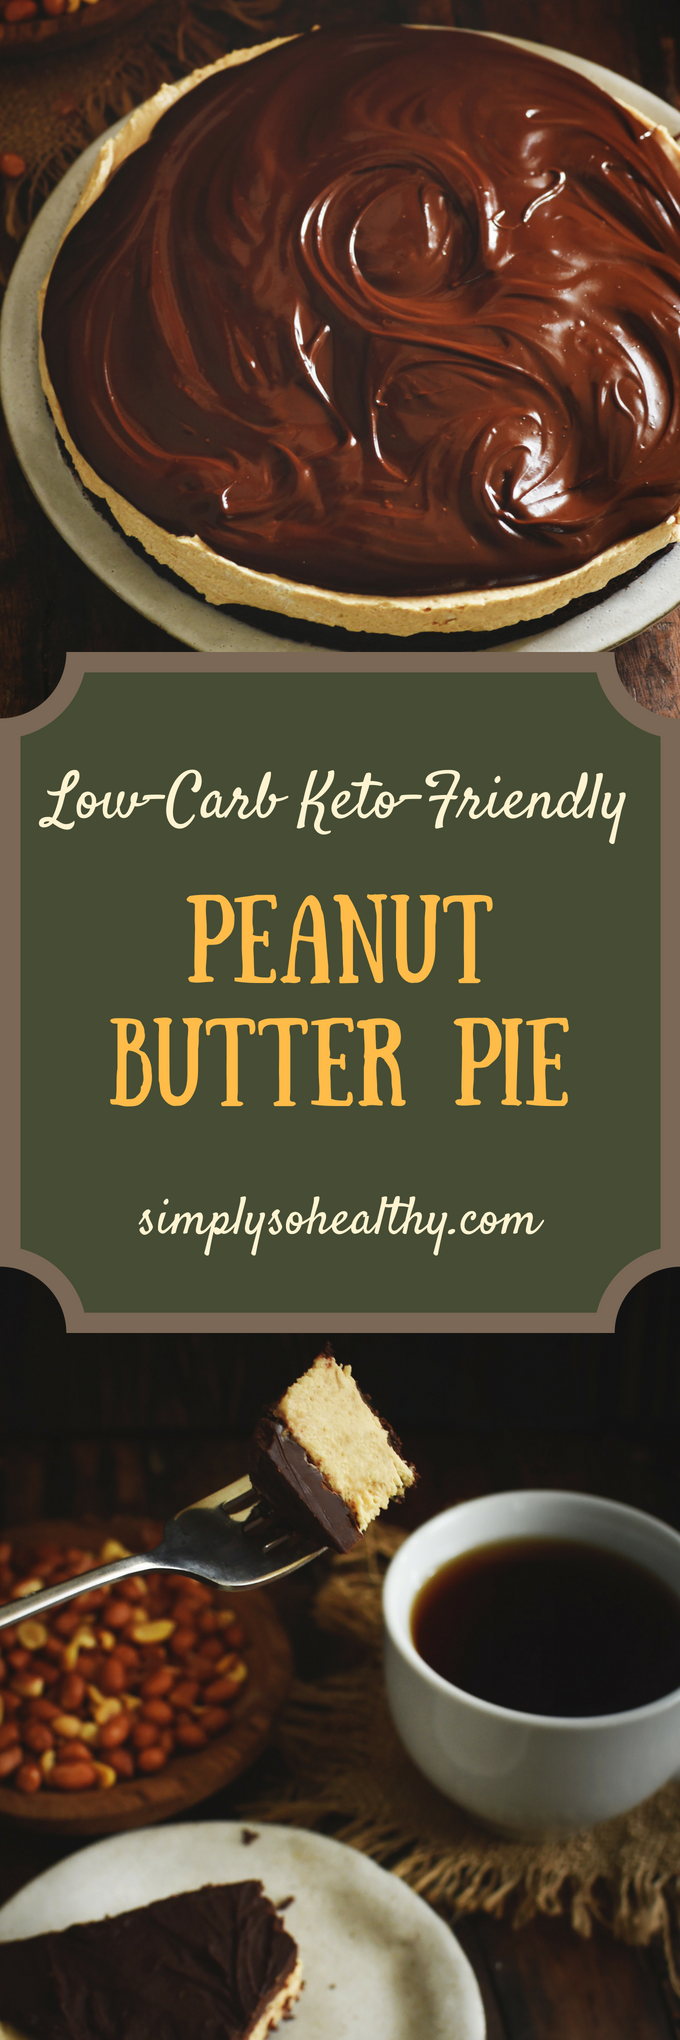 Photo of Low-Carb Peanut Butter Pie Recipe cover with text